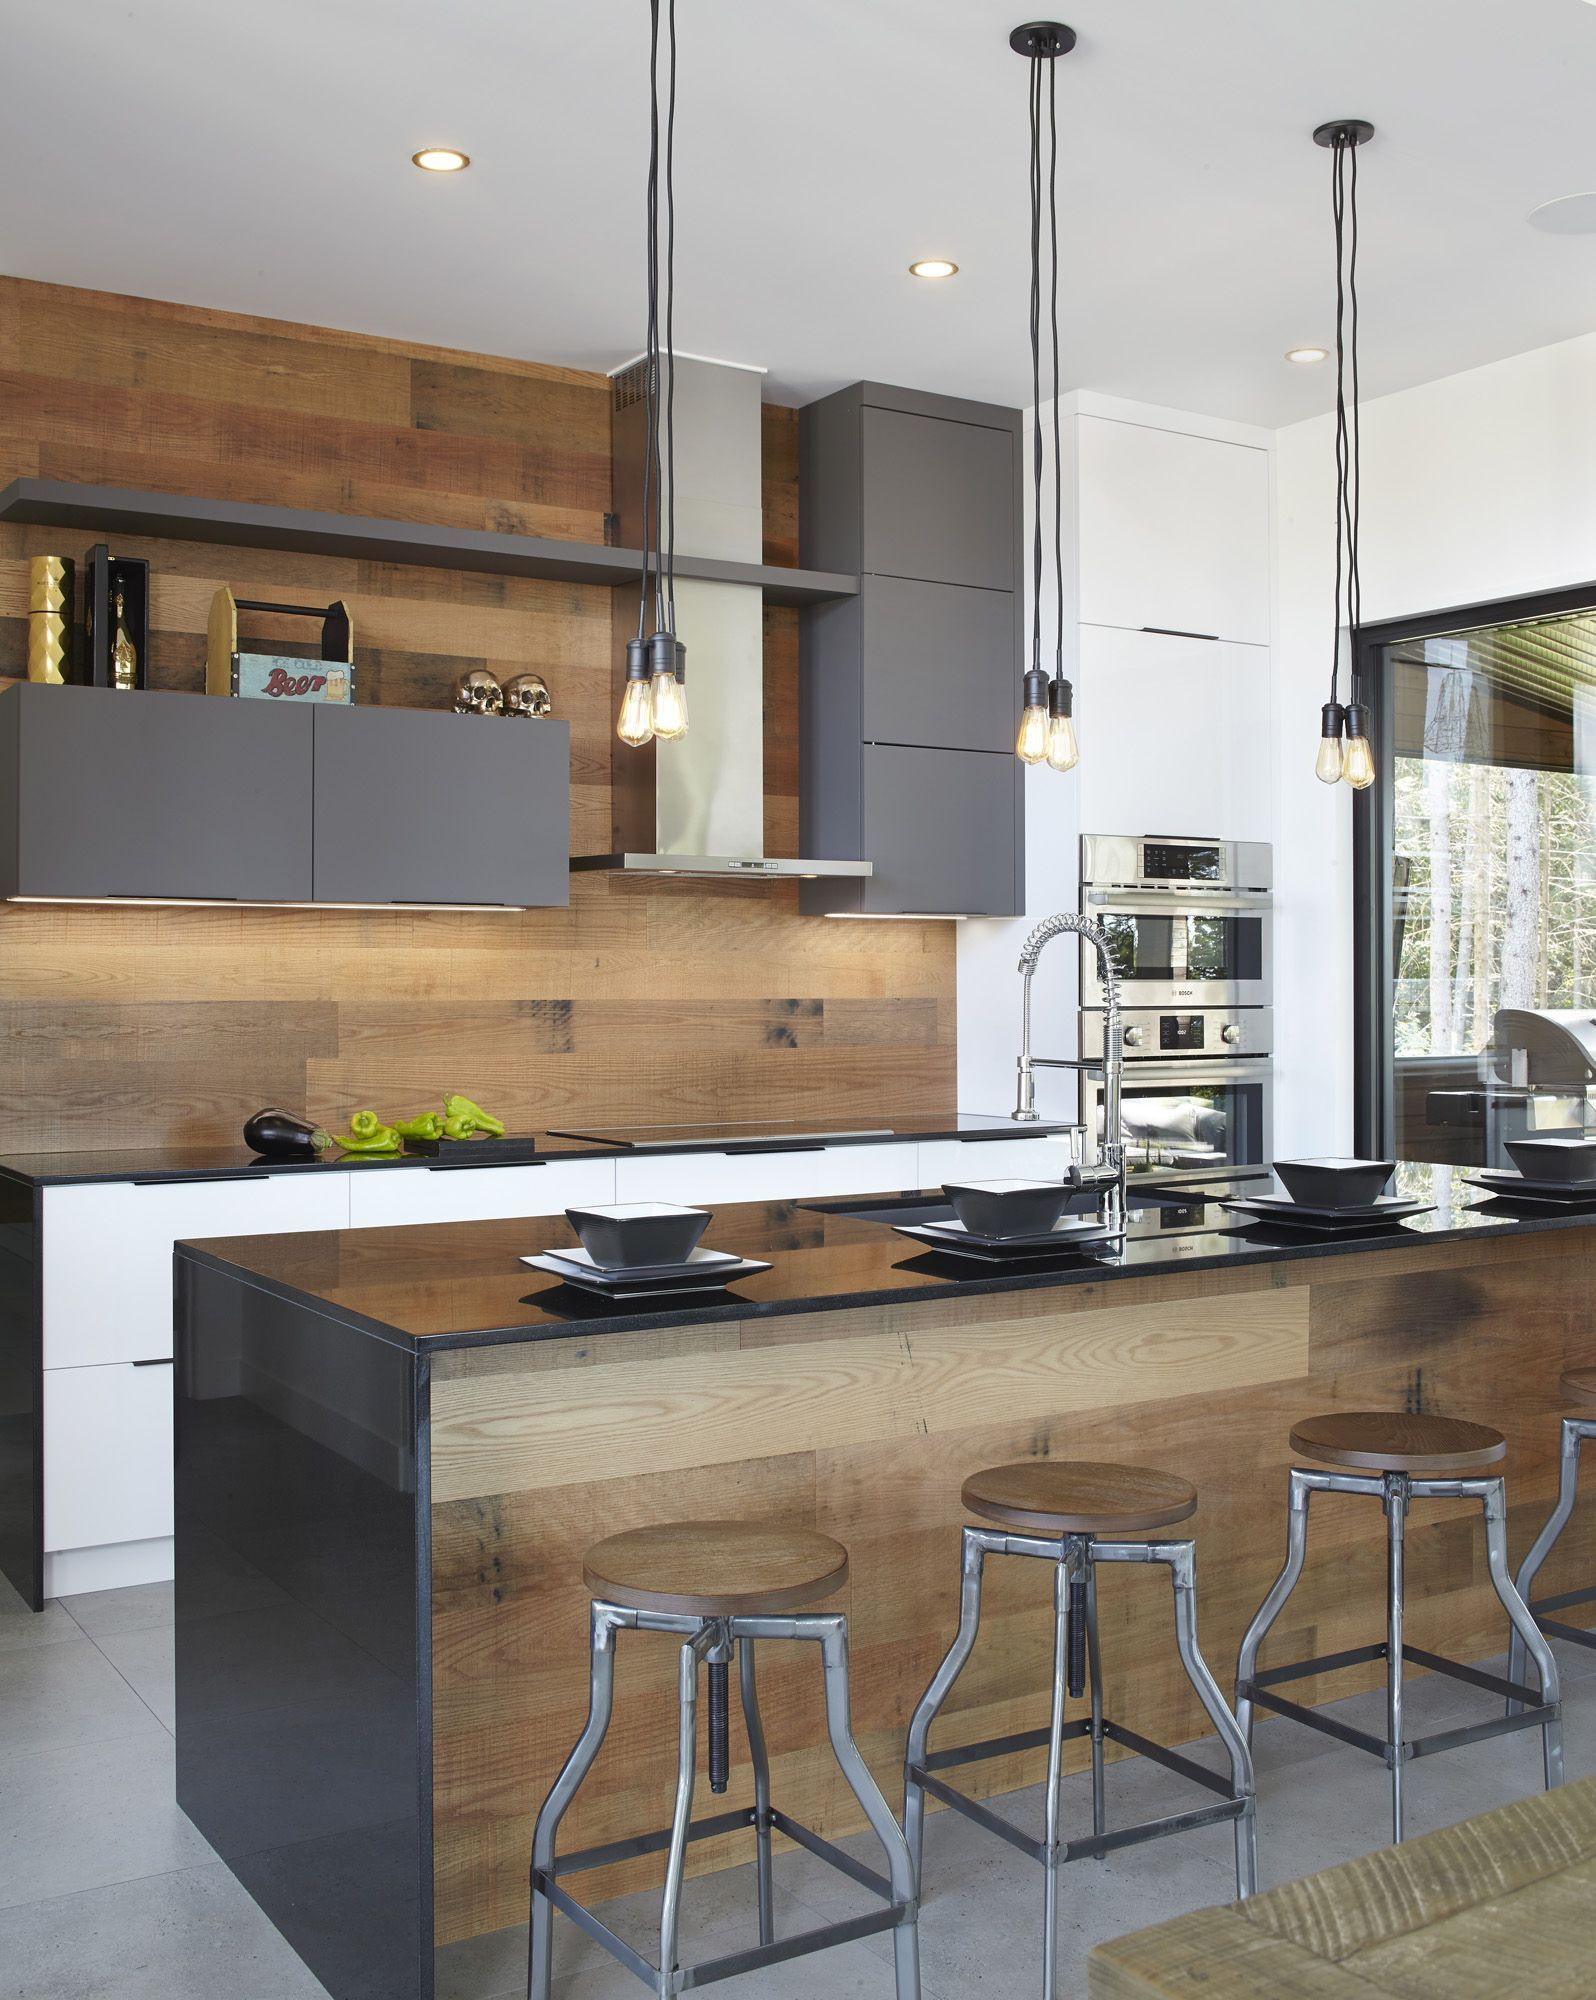 Cuisineouverte In 2020 Refacing Kitchen Cabinets New Kitchen Cabinets Kitchen Design